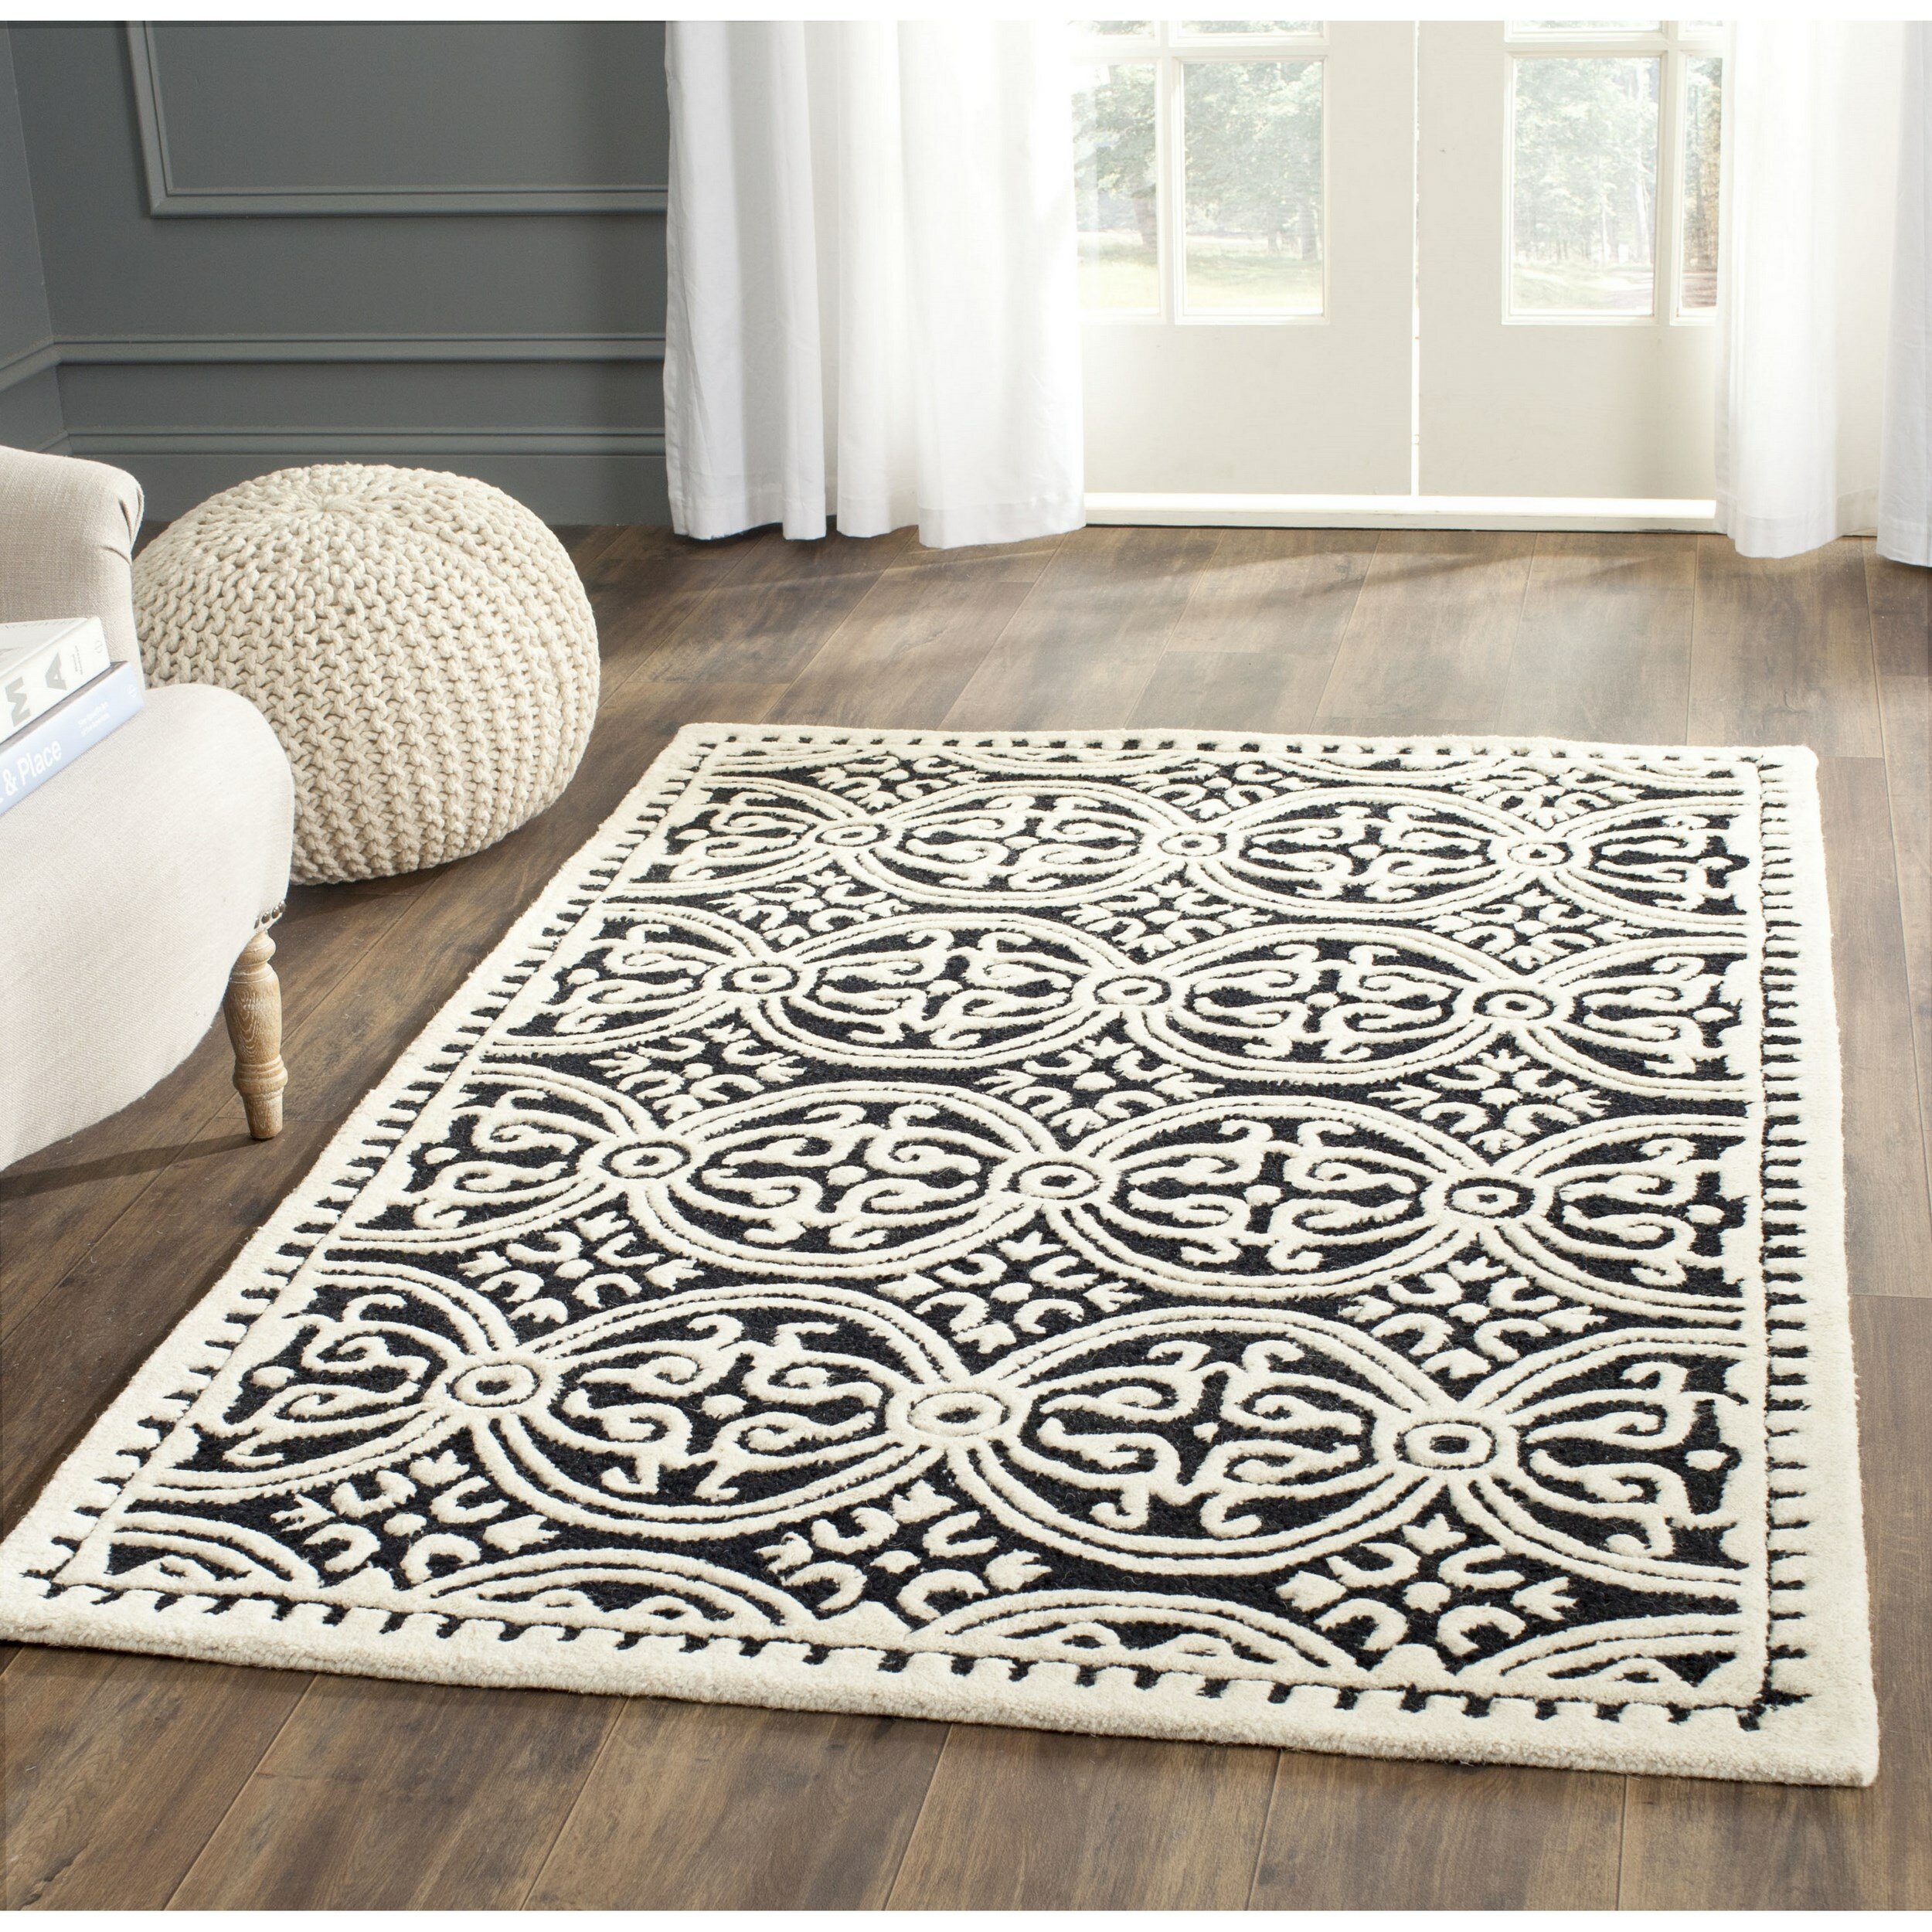 jwwl braided jute area dining home x amazon com ihf decor star kitchen material dp fabric rectangle design black rugs rug inch